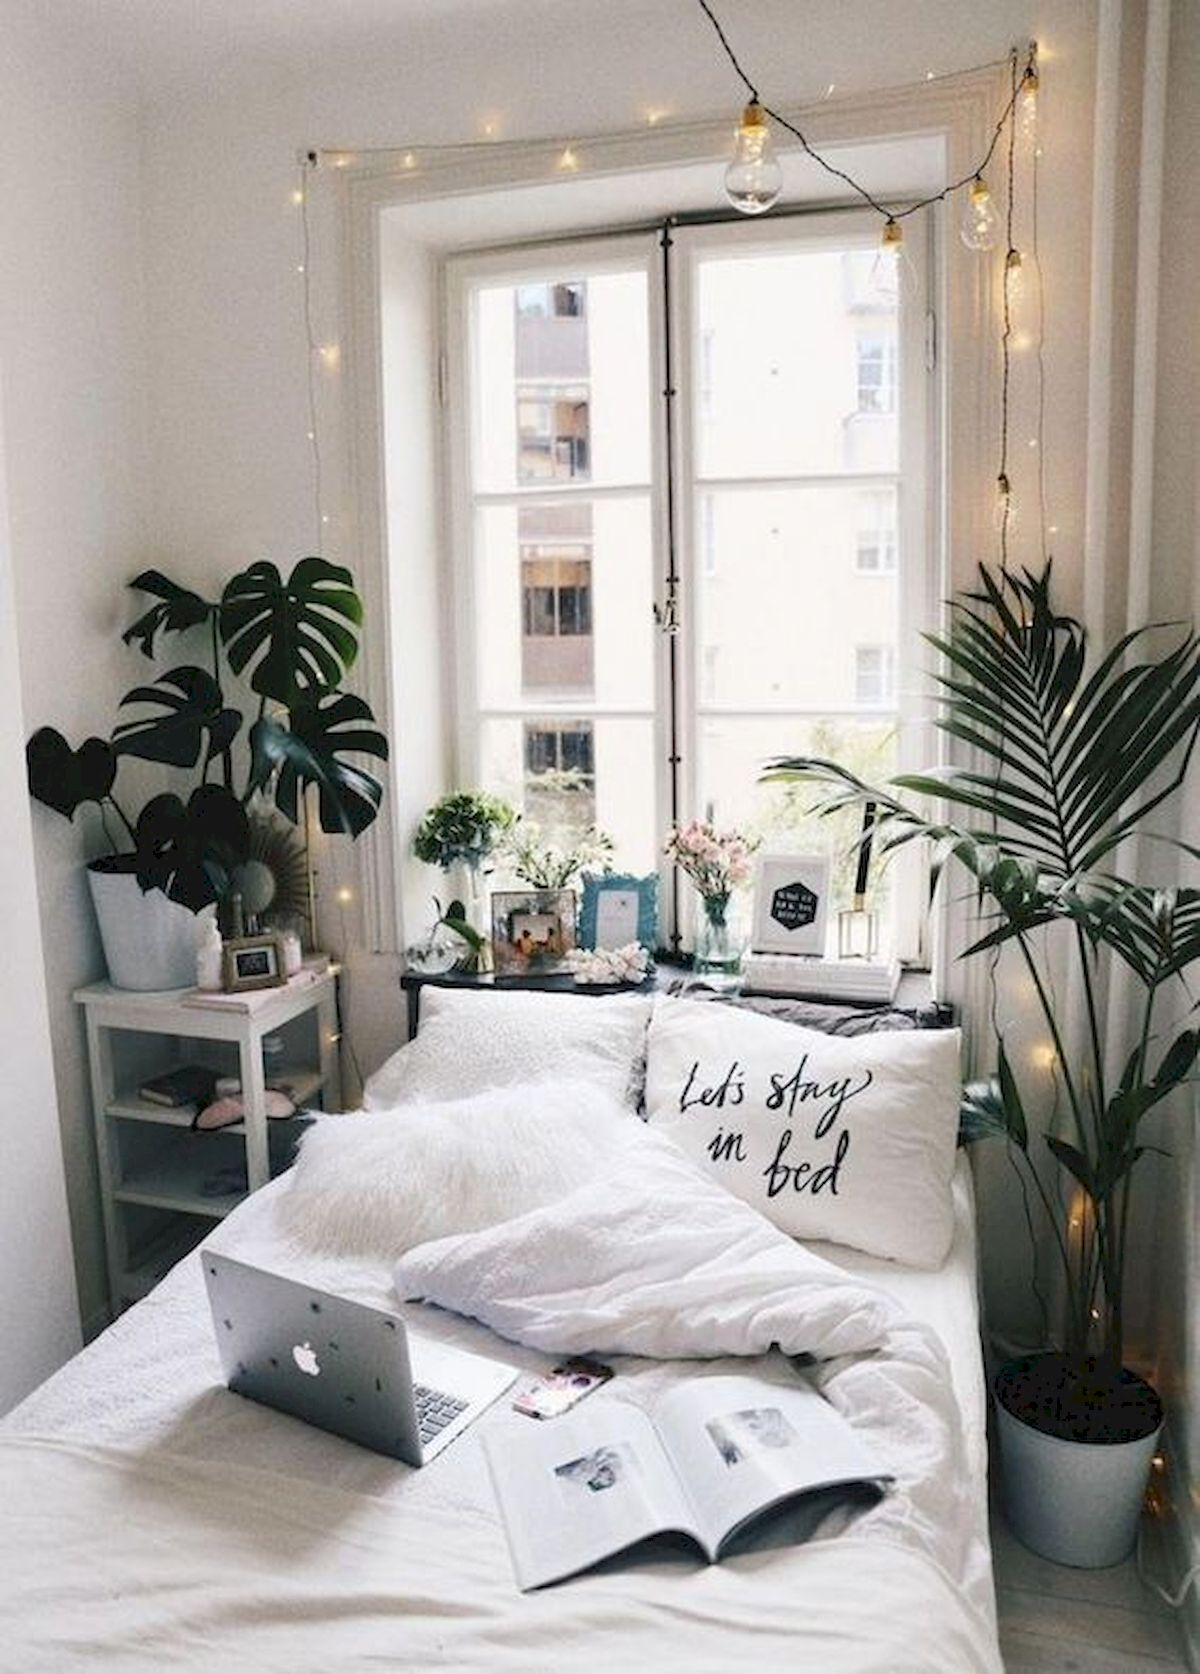 60 Small Apartment Bedroom Decor Ideas On A Budget (13)